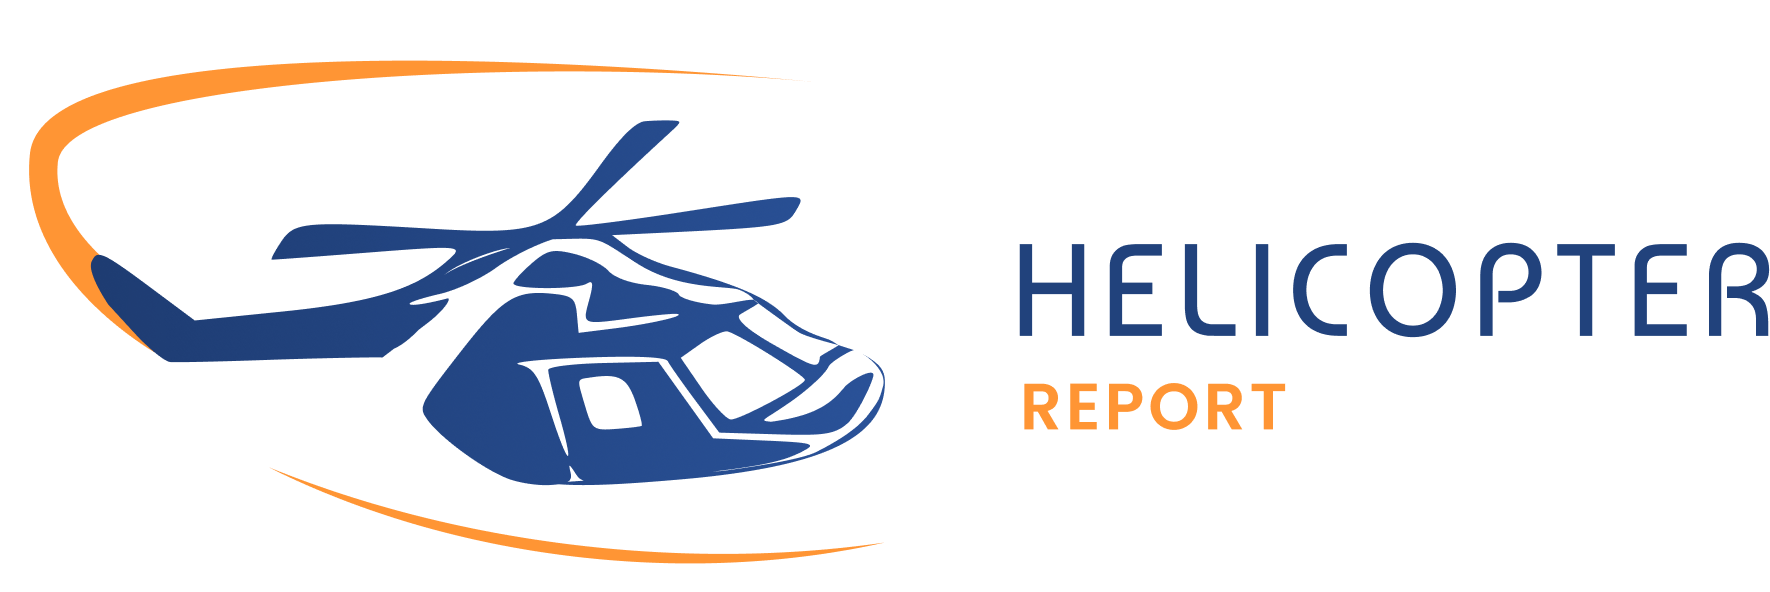 Helicopter Profits